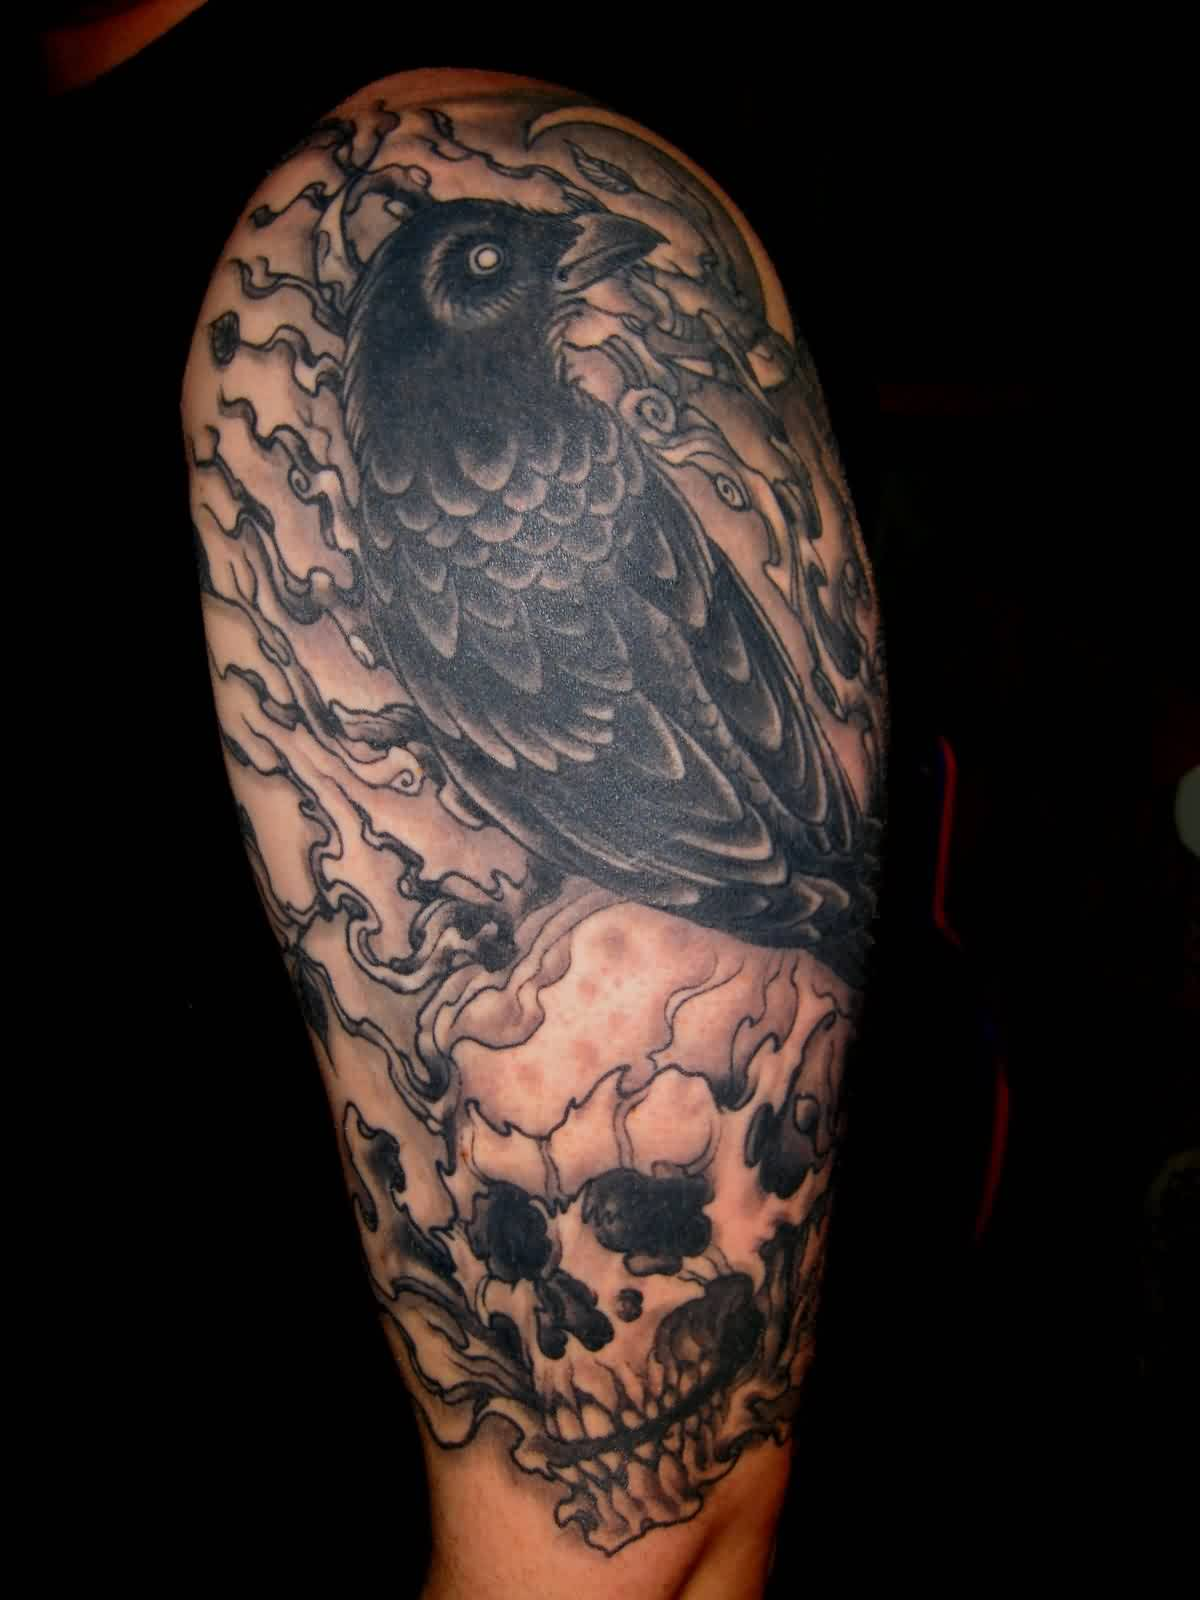 Black Crow On Skull Tattoo On Half Sleeve